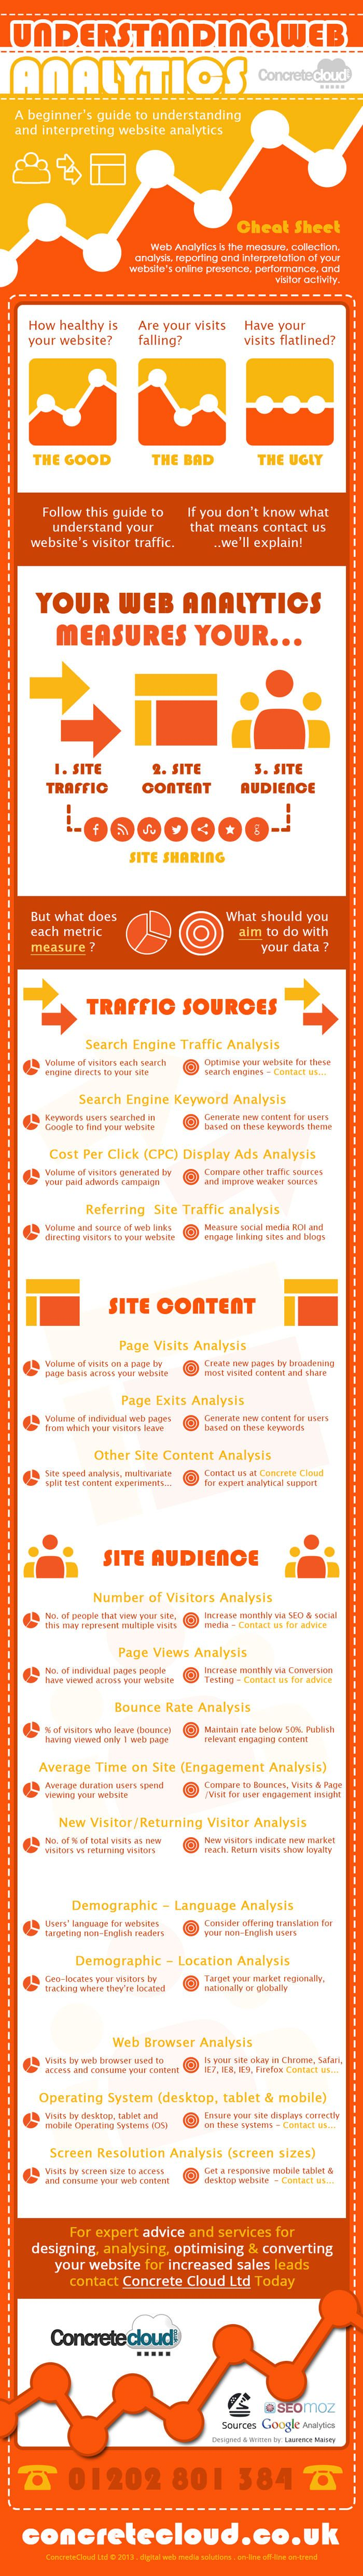 Infographic: Google Analytics - website analytics guide for web analysts. Bounce Rate . Page Visits . Exit Rates . Website Conversions. Better understand your Web Visitors' Behaviour, your web traffic sources, and your website content. #concretecloud